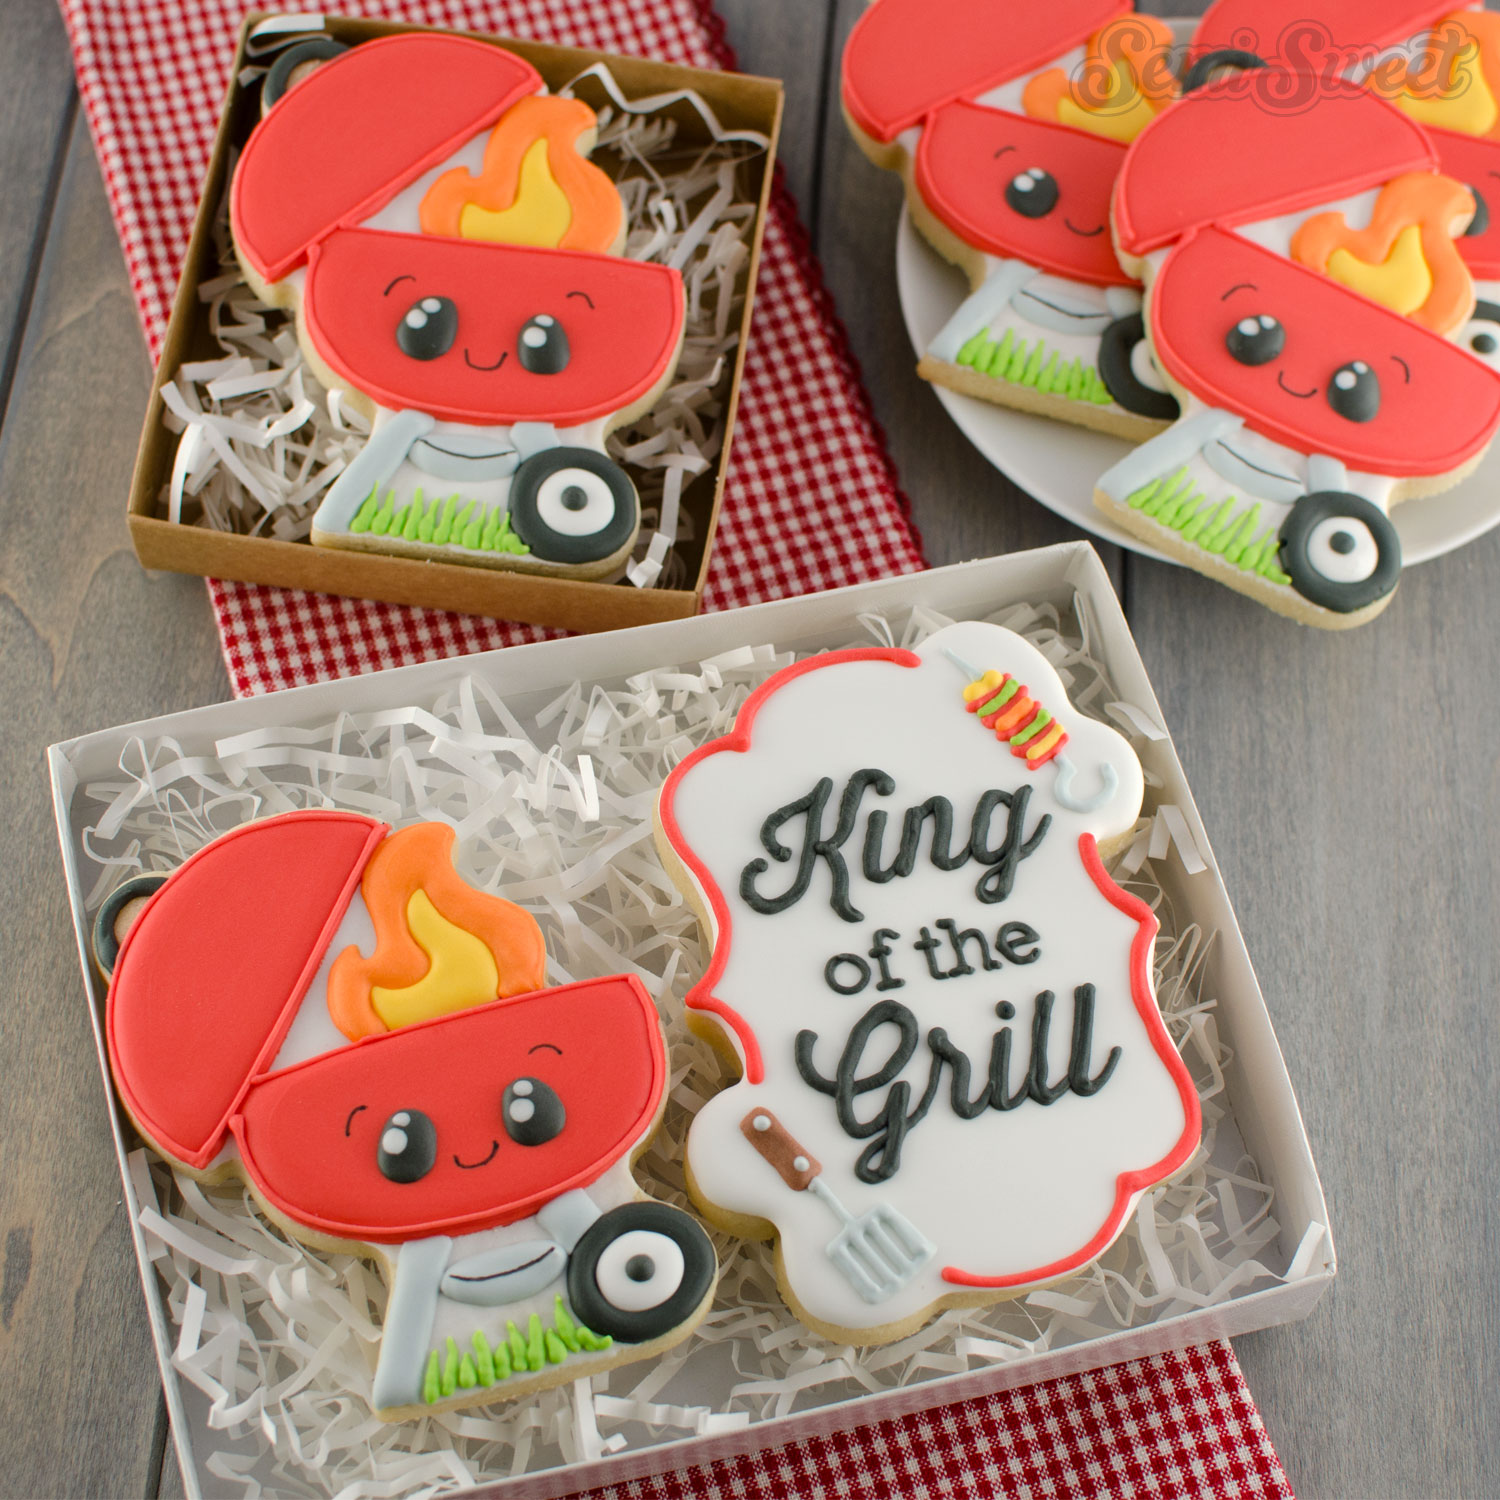 bbq grill cookies in gift boxes